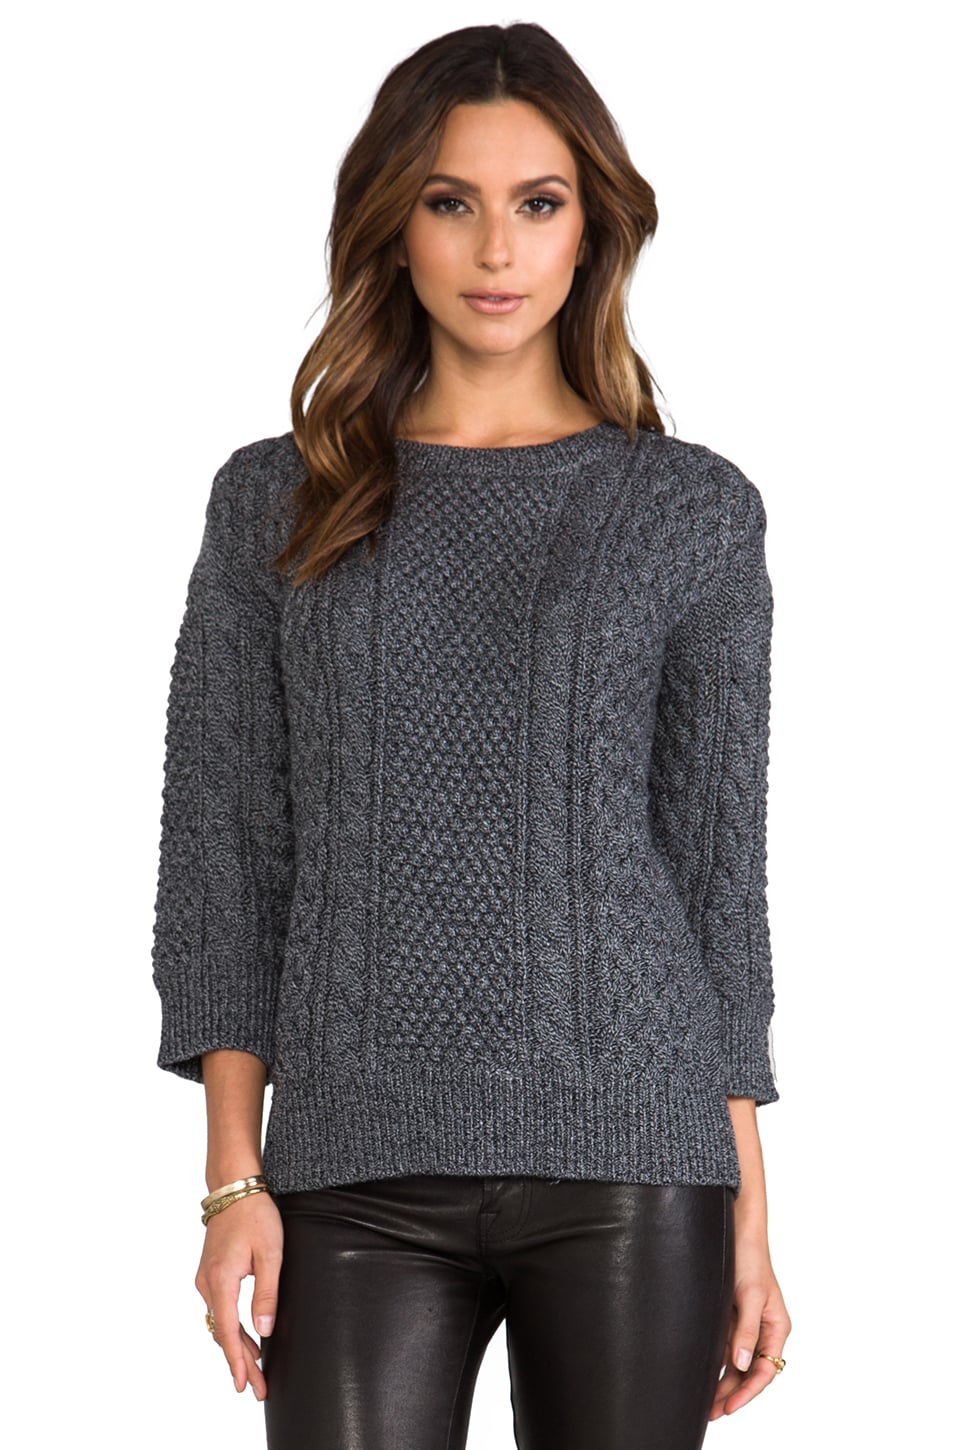 Trina Turk Haya Sweater in Charcoal